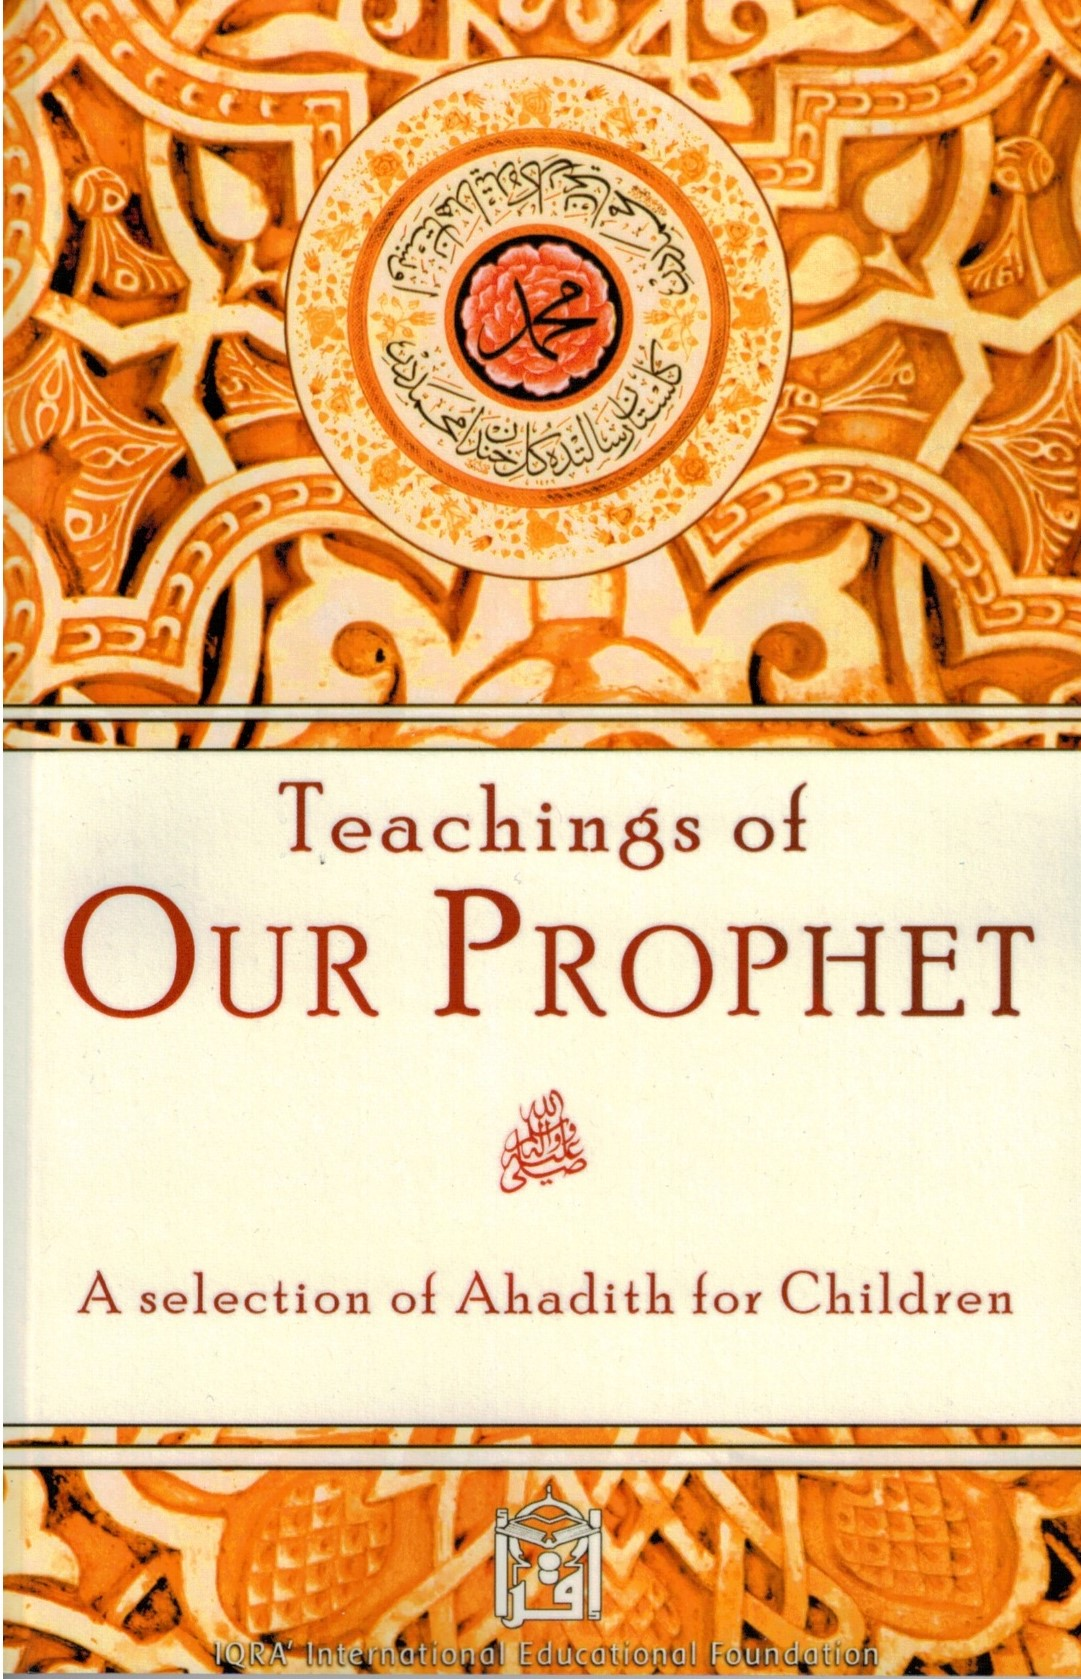 Teachings of Our Prophet: Selection of Ahadith for Children